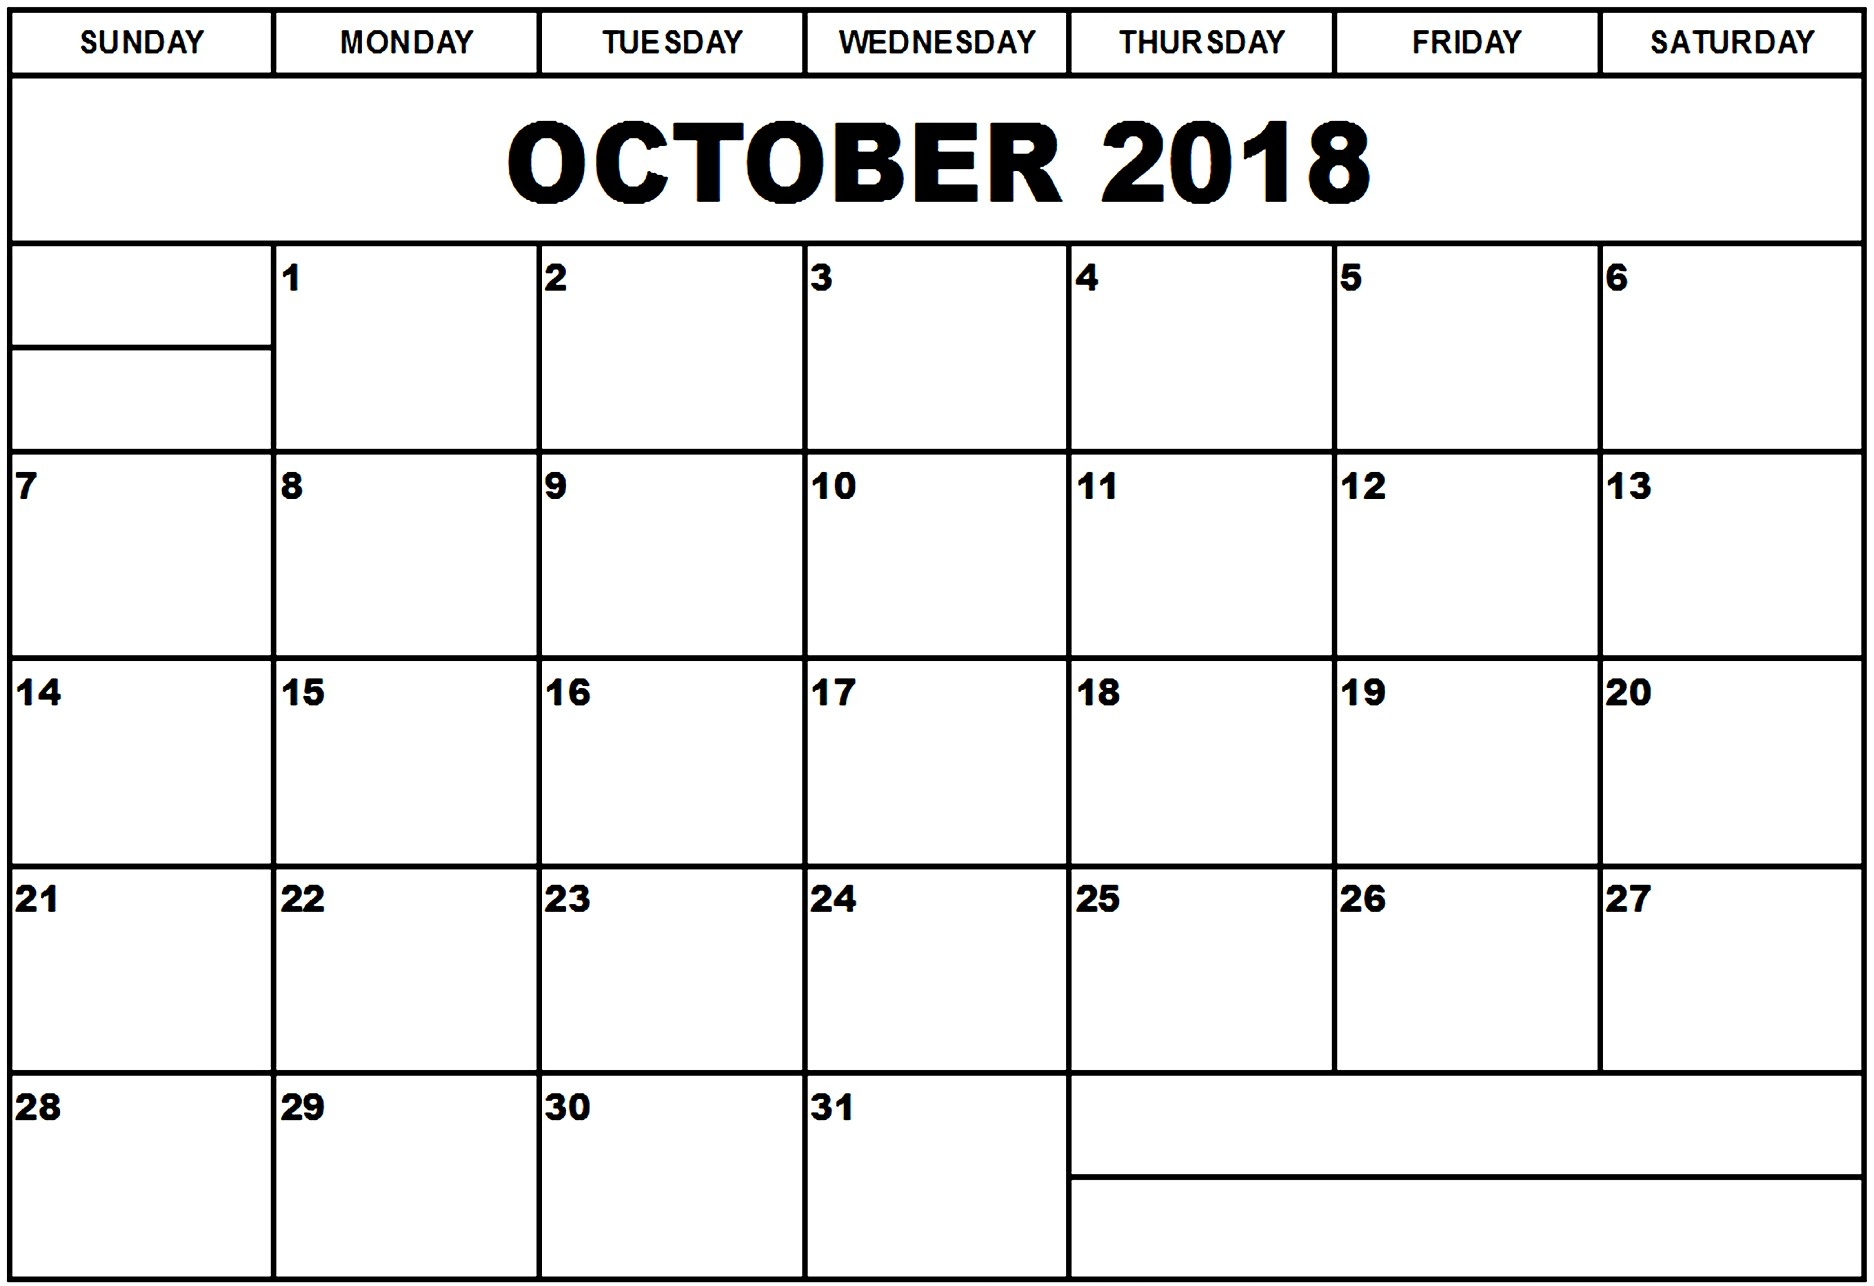 october 2018 calendar usa bank holidays calendar printable with October 2018 Calendar Holidays USA erdferdf